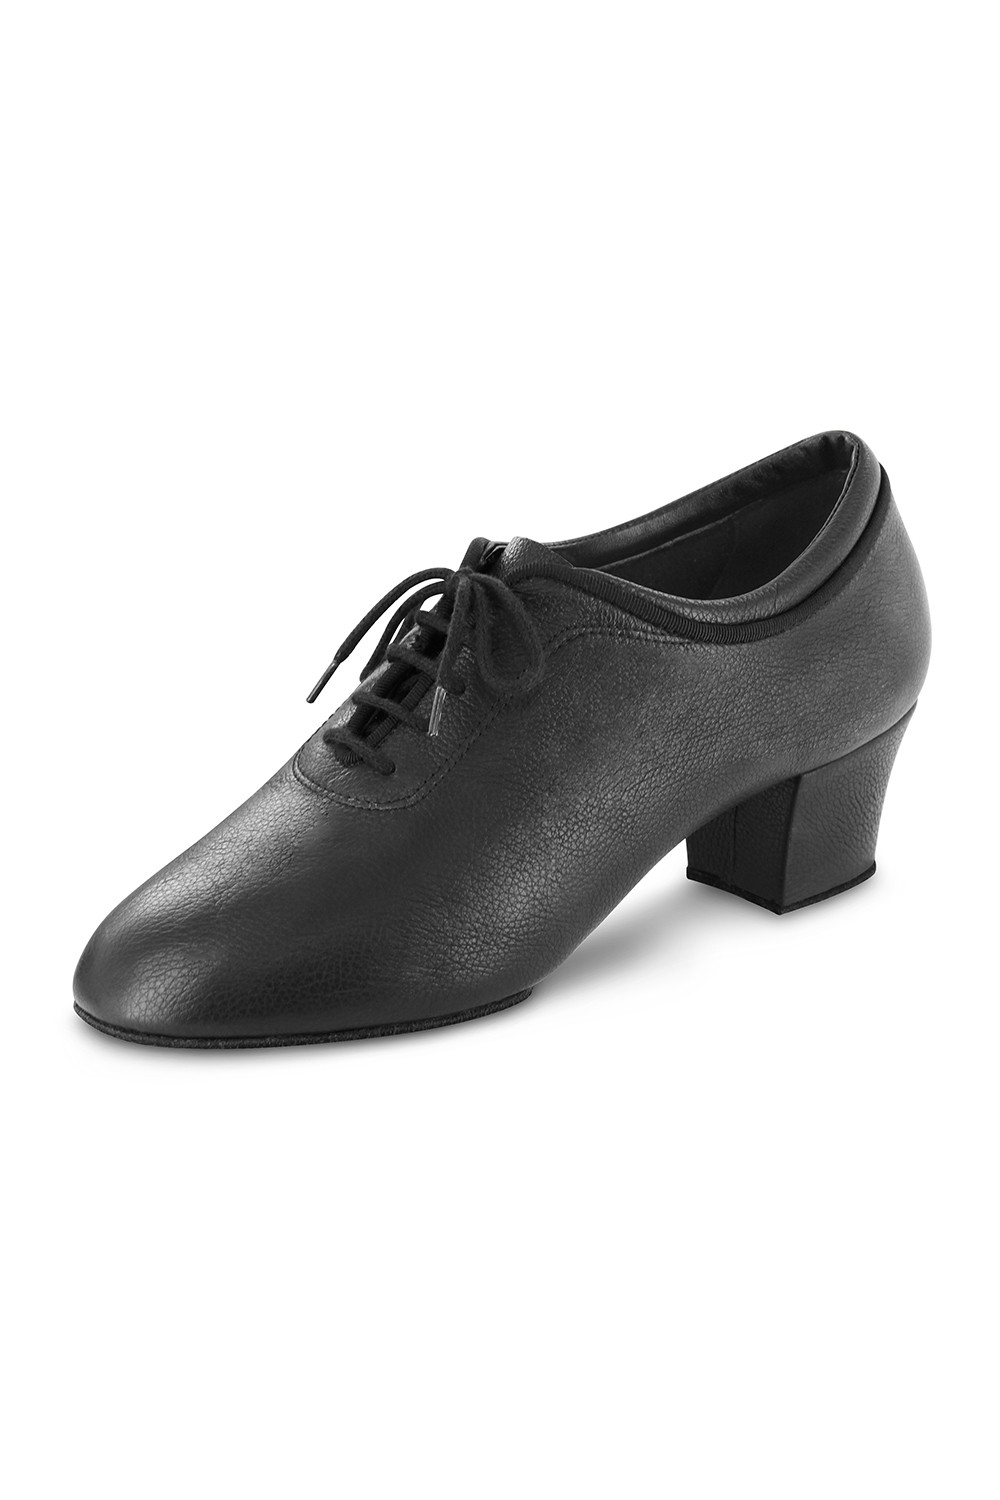 Men's Ballroom & Latin Shoes